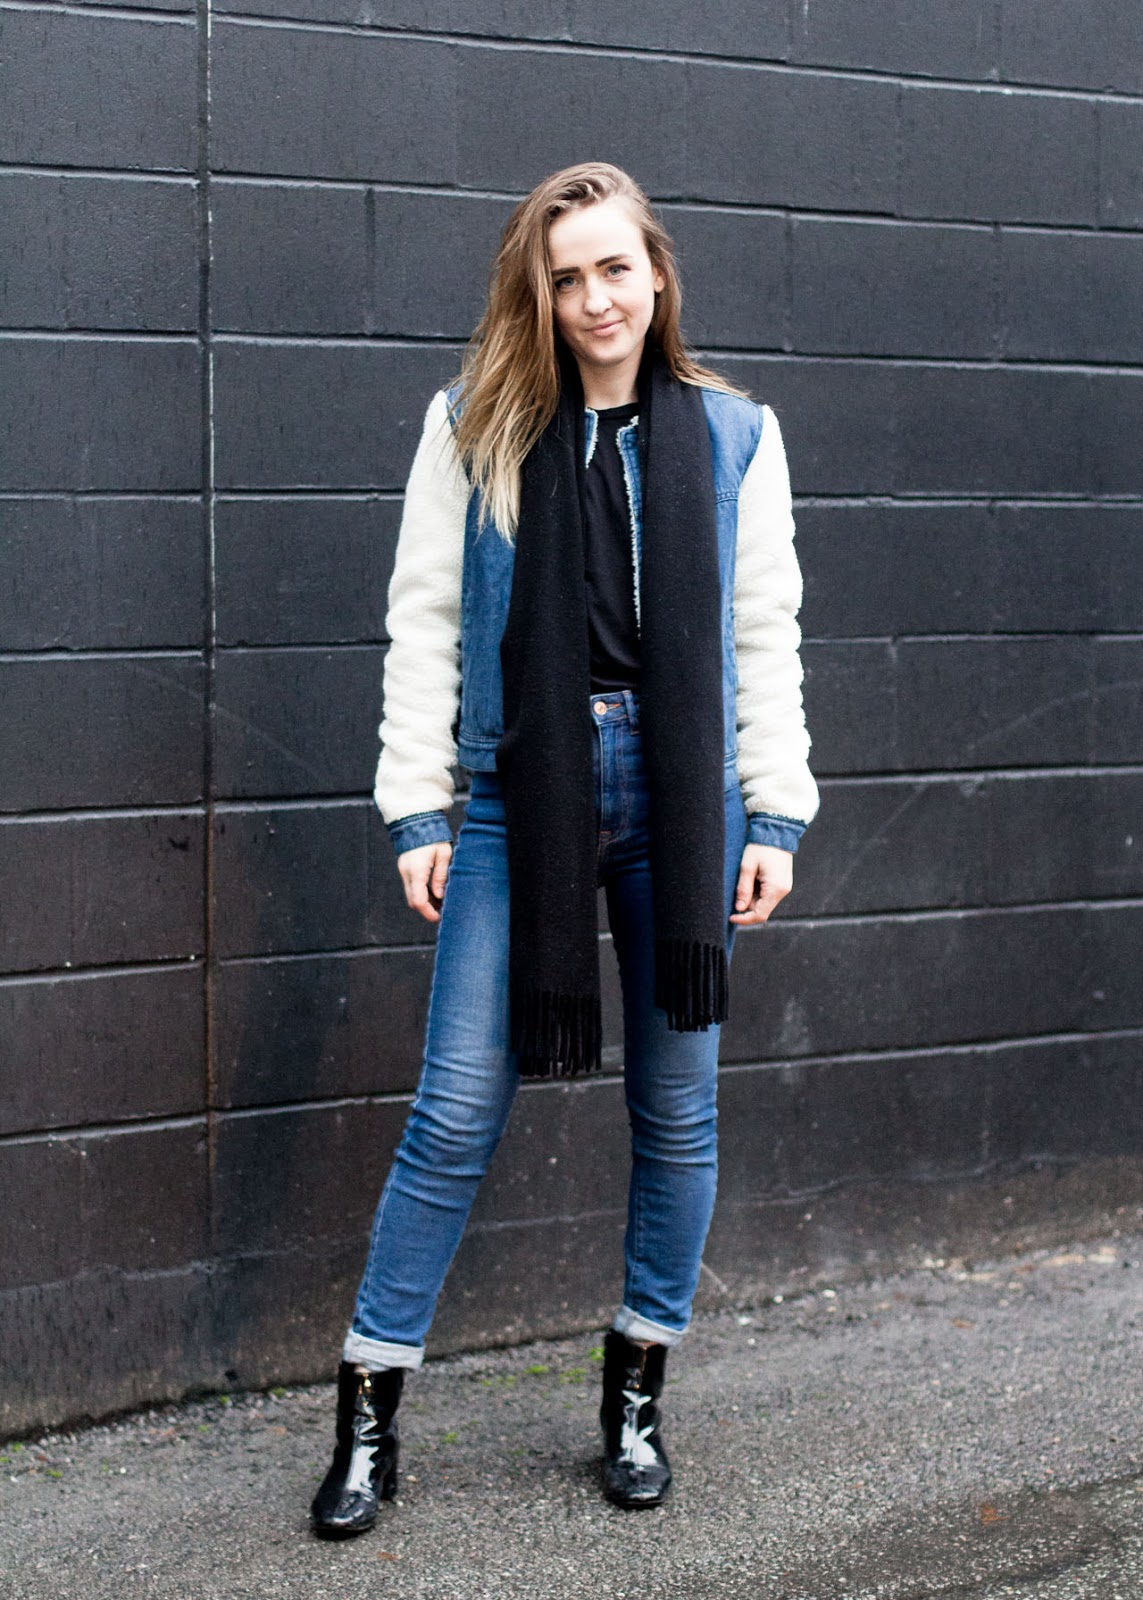 2018 resolutions - winter denim outfit - Vancouver Fashion blogger